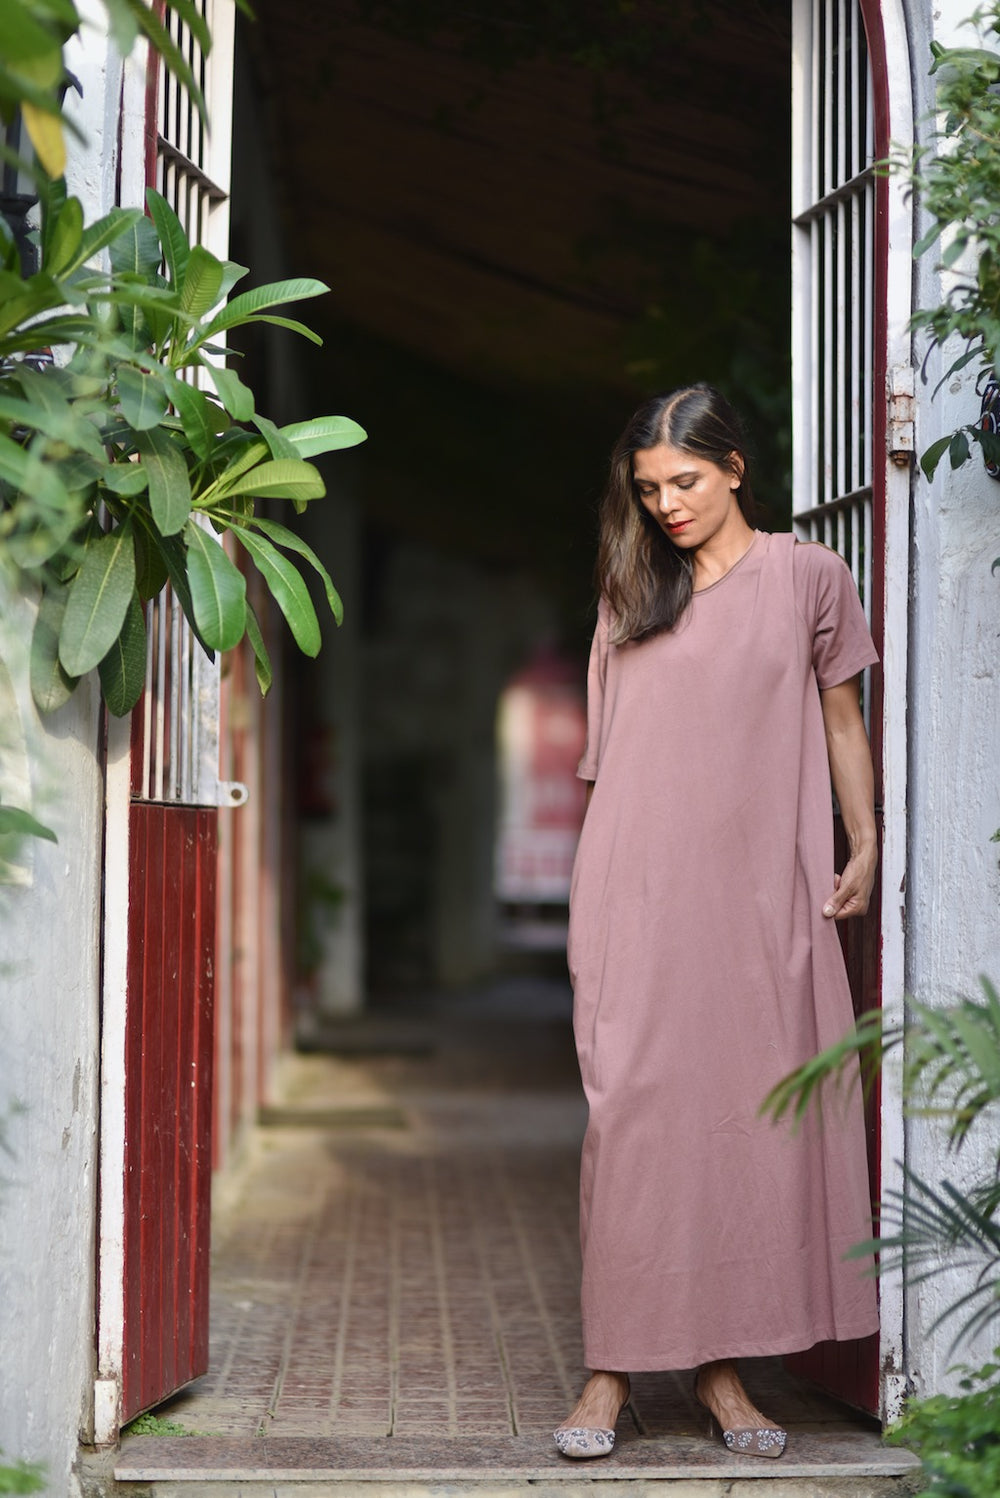 Sofia, Organic Cotton Jersey Maxi Dress in Dusty Rose, Embroidered at Shoulder - kinchecom